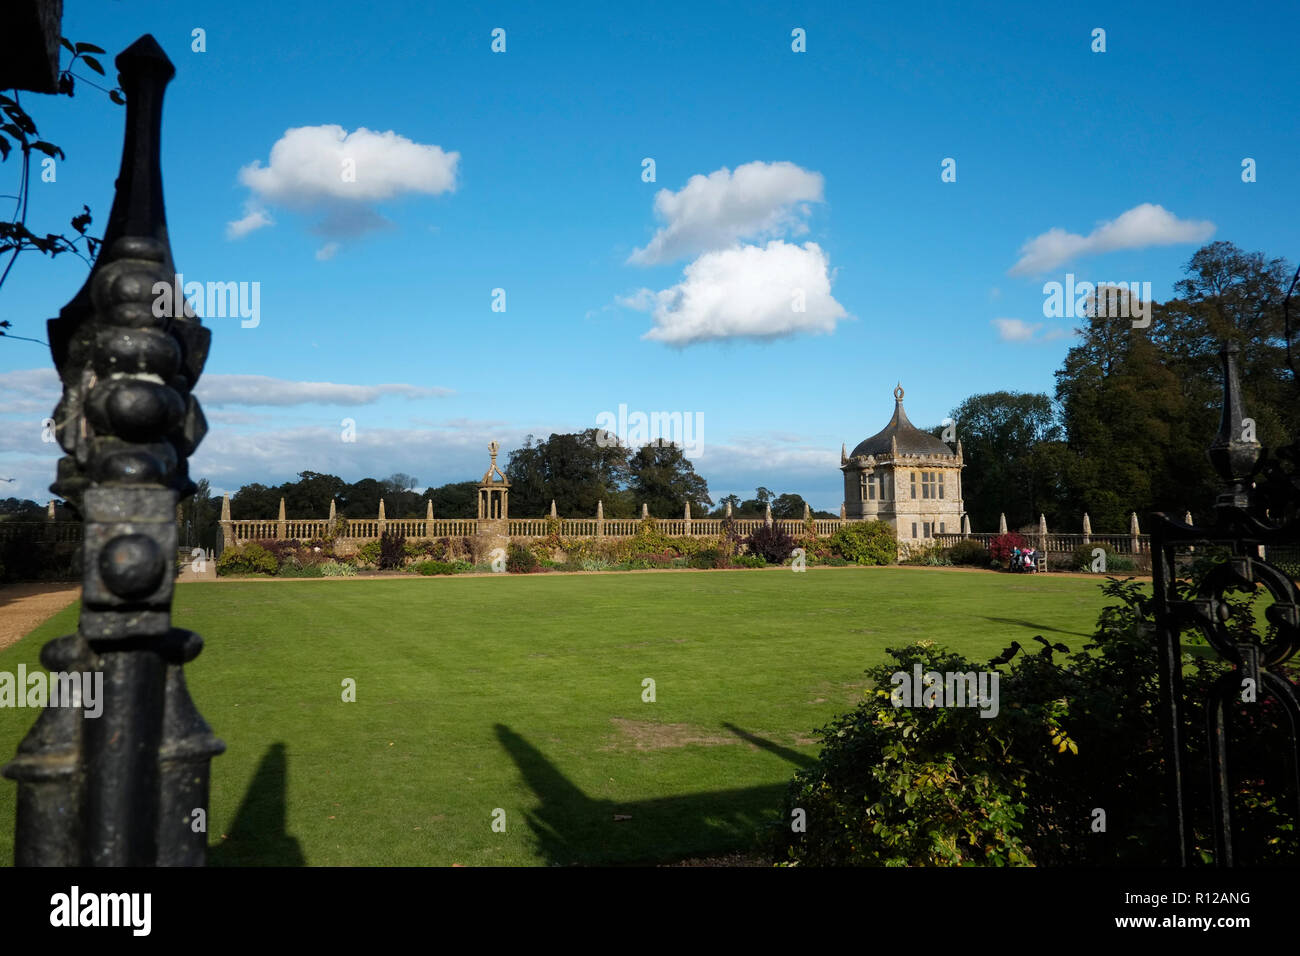 Montacute House Montacute South Somerset. The gardens showing one of two Angle Houses and the quadrangle walls to the west and south - Stock Image